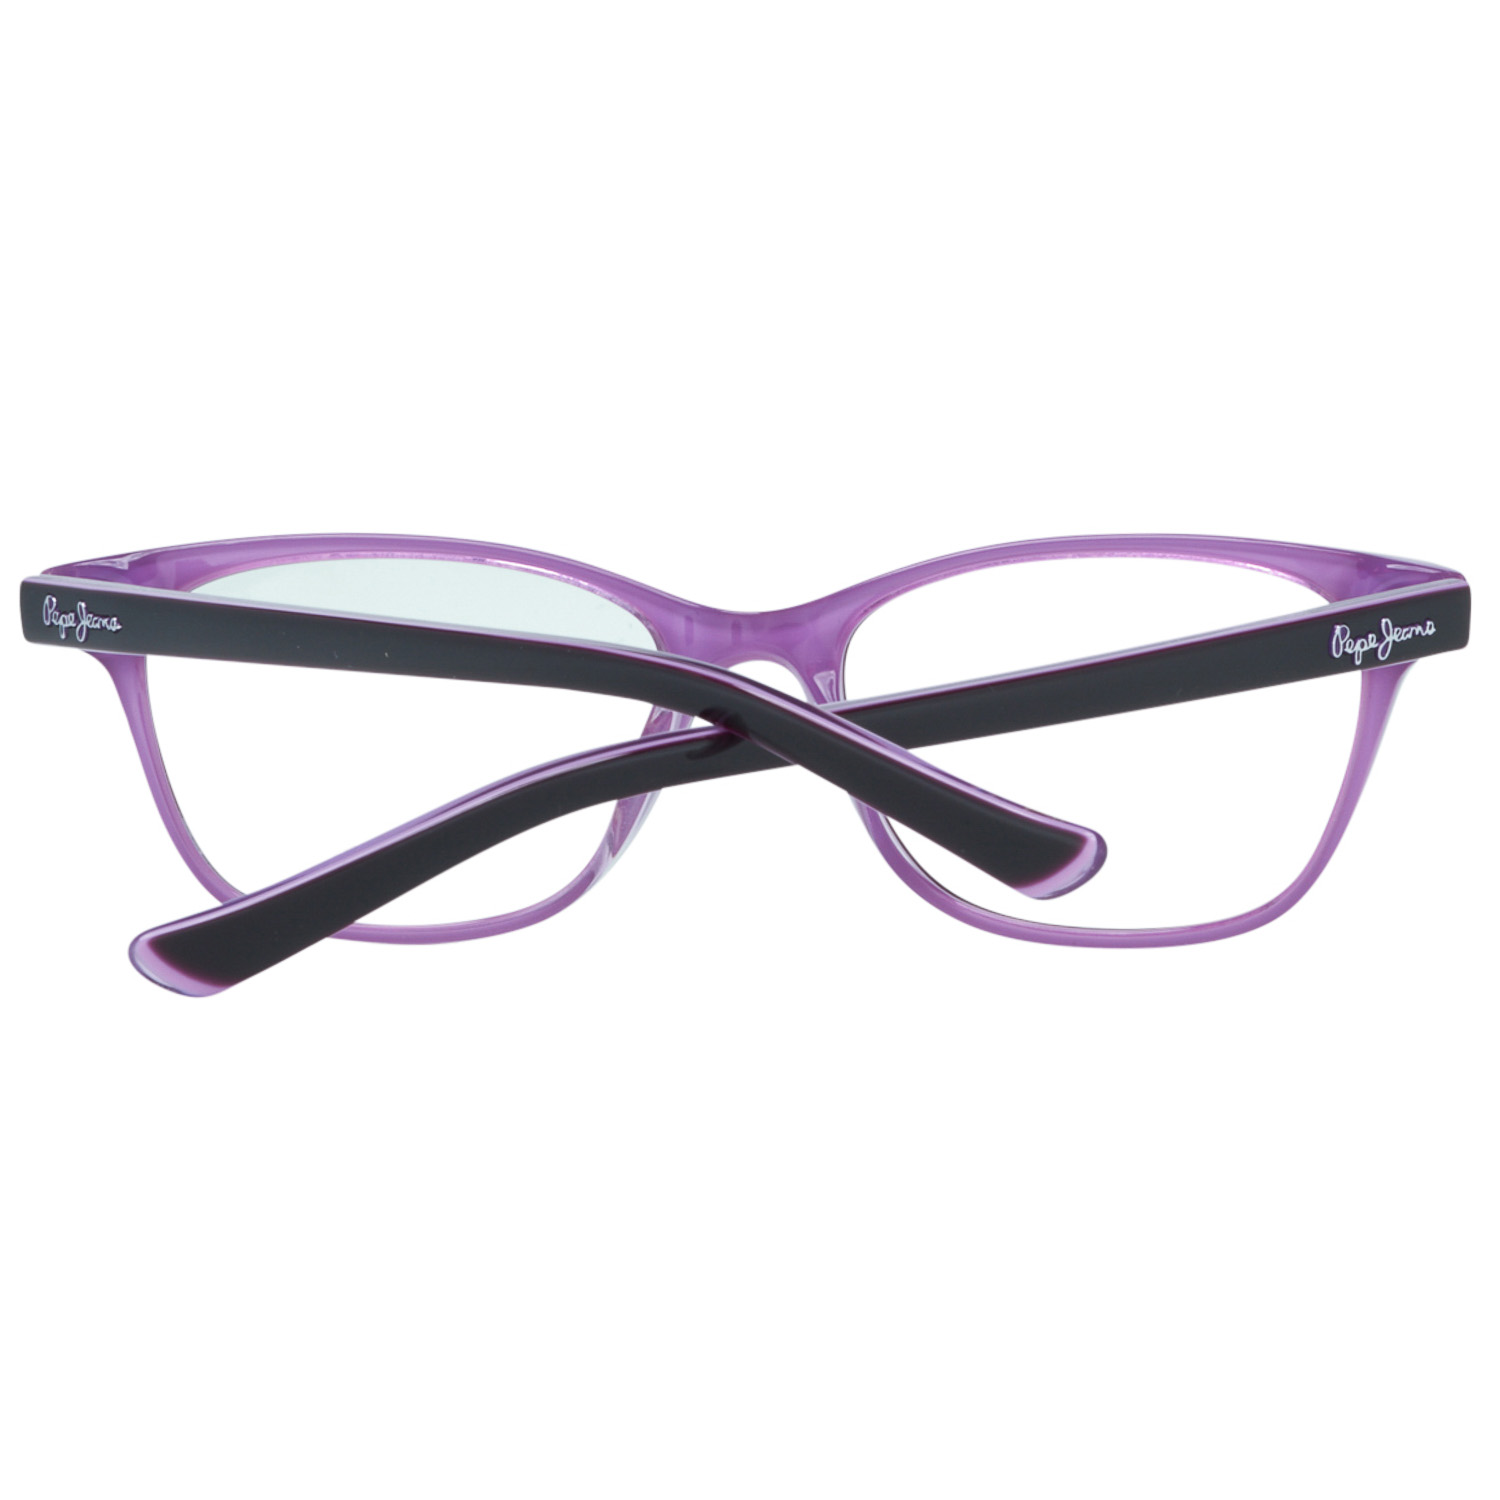 Pepe Jeans Optical Frame PJ3222 C4 52 Elanor Purple